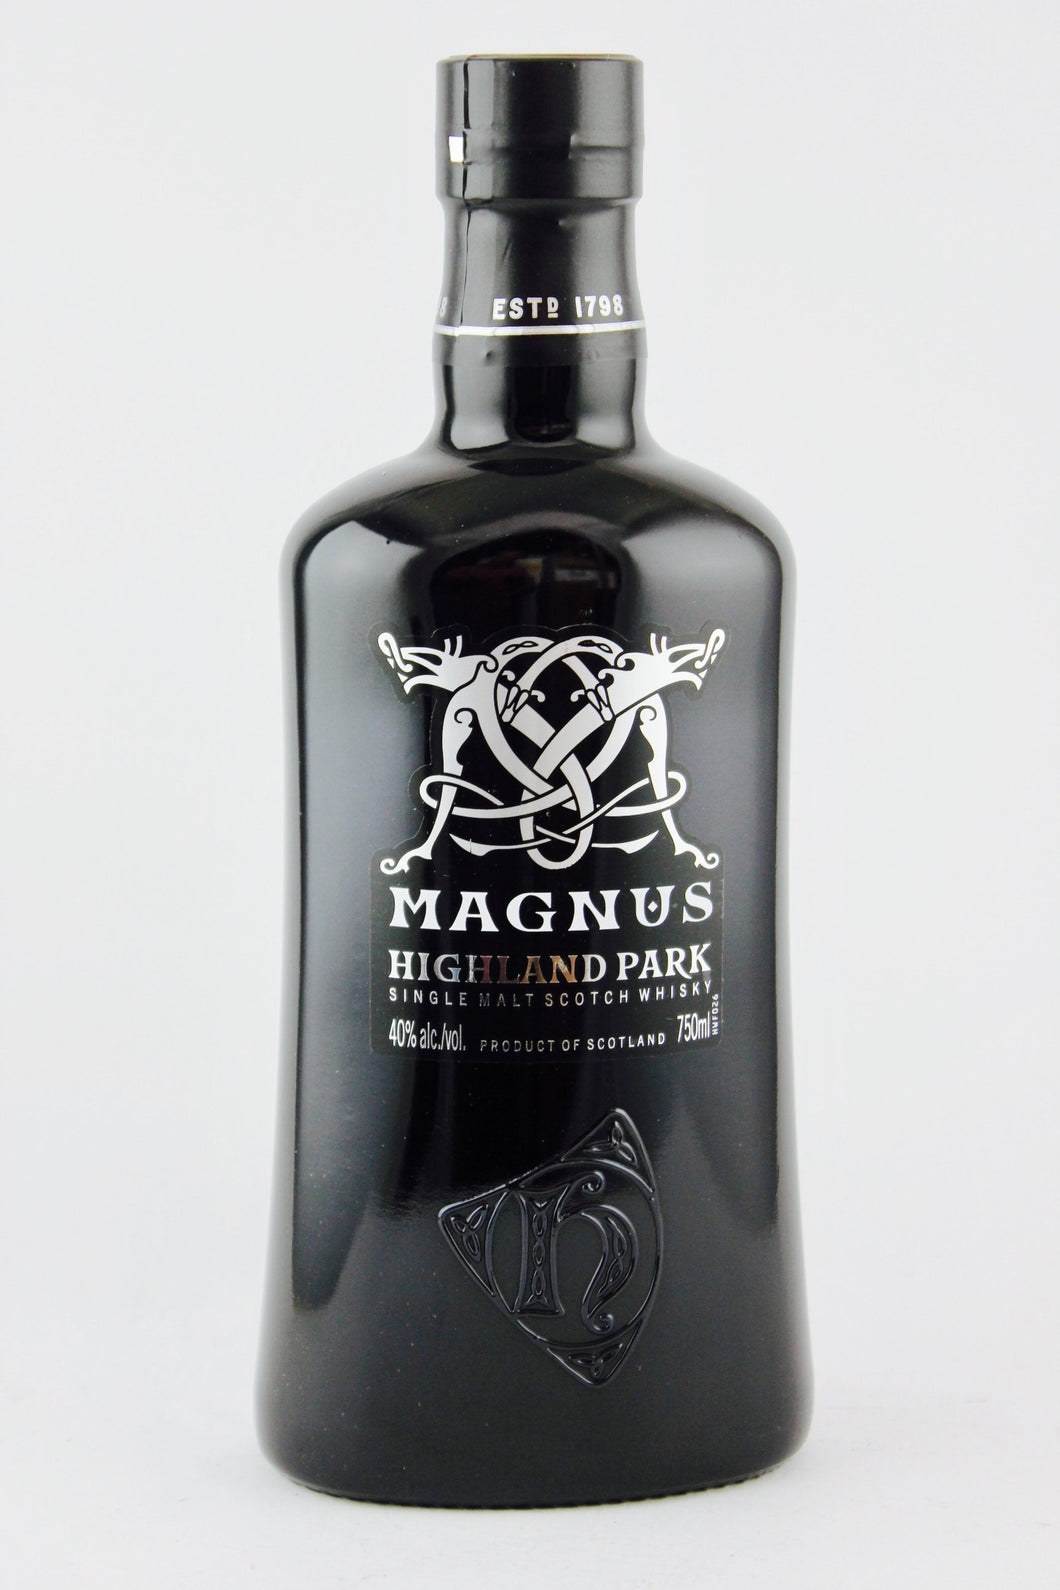 Magnus Highland Park Single Malt Scotch Whisky (750ml Bottle)